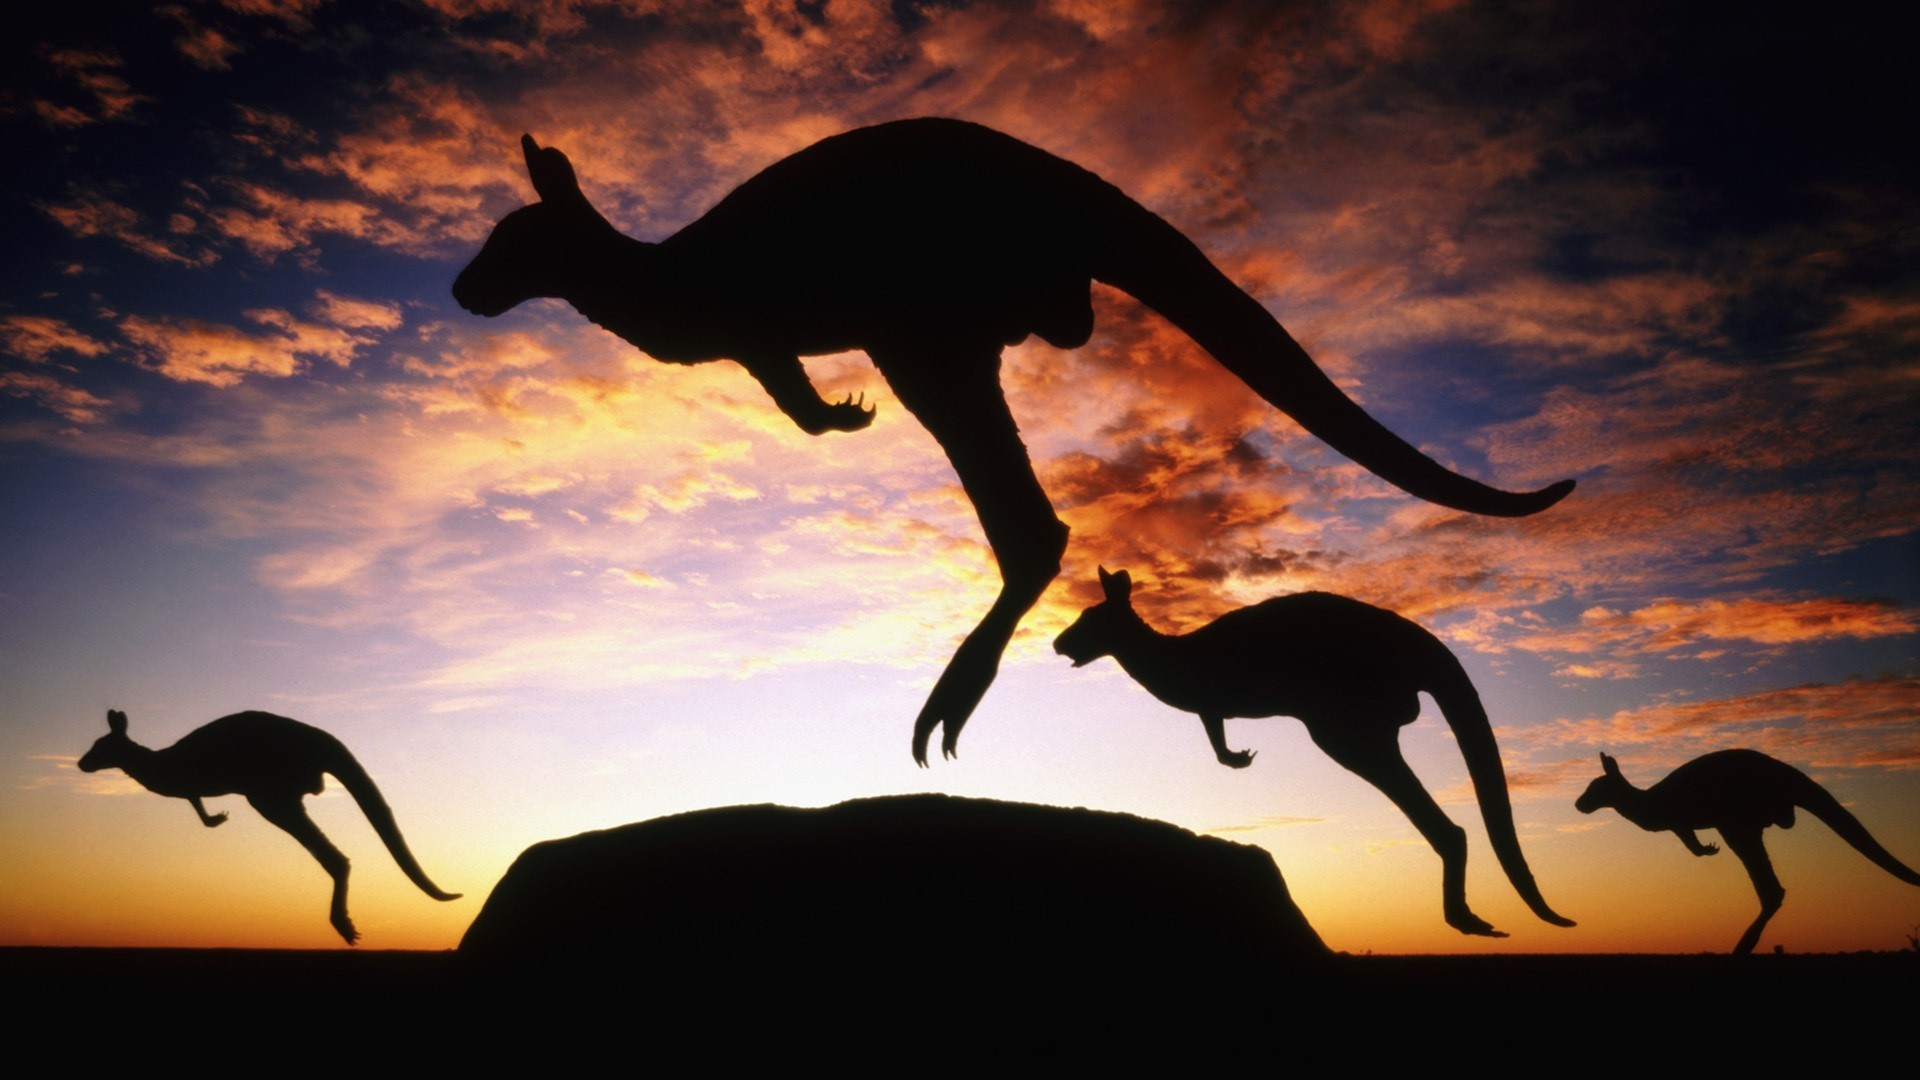 sunset clouds silhouettes kangaroos HD Wallpaper